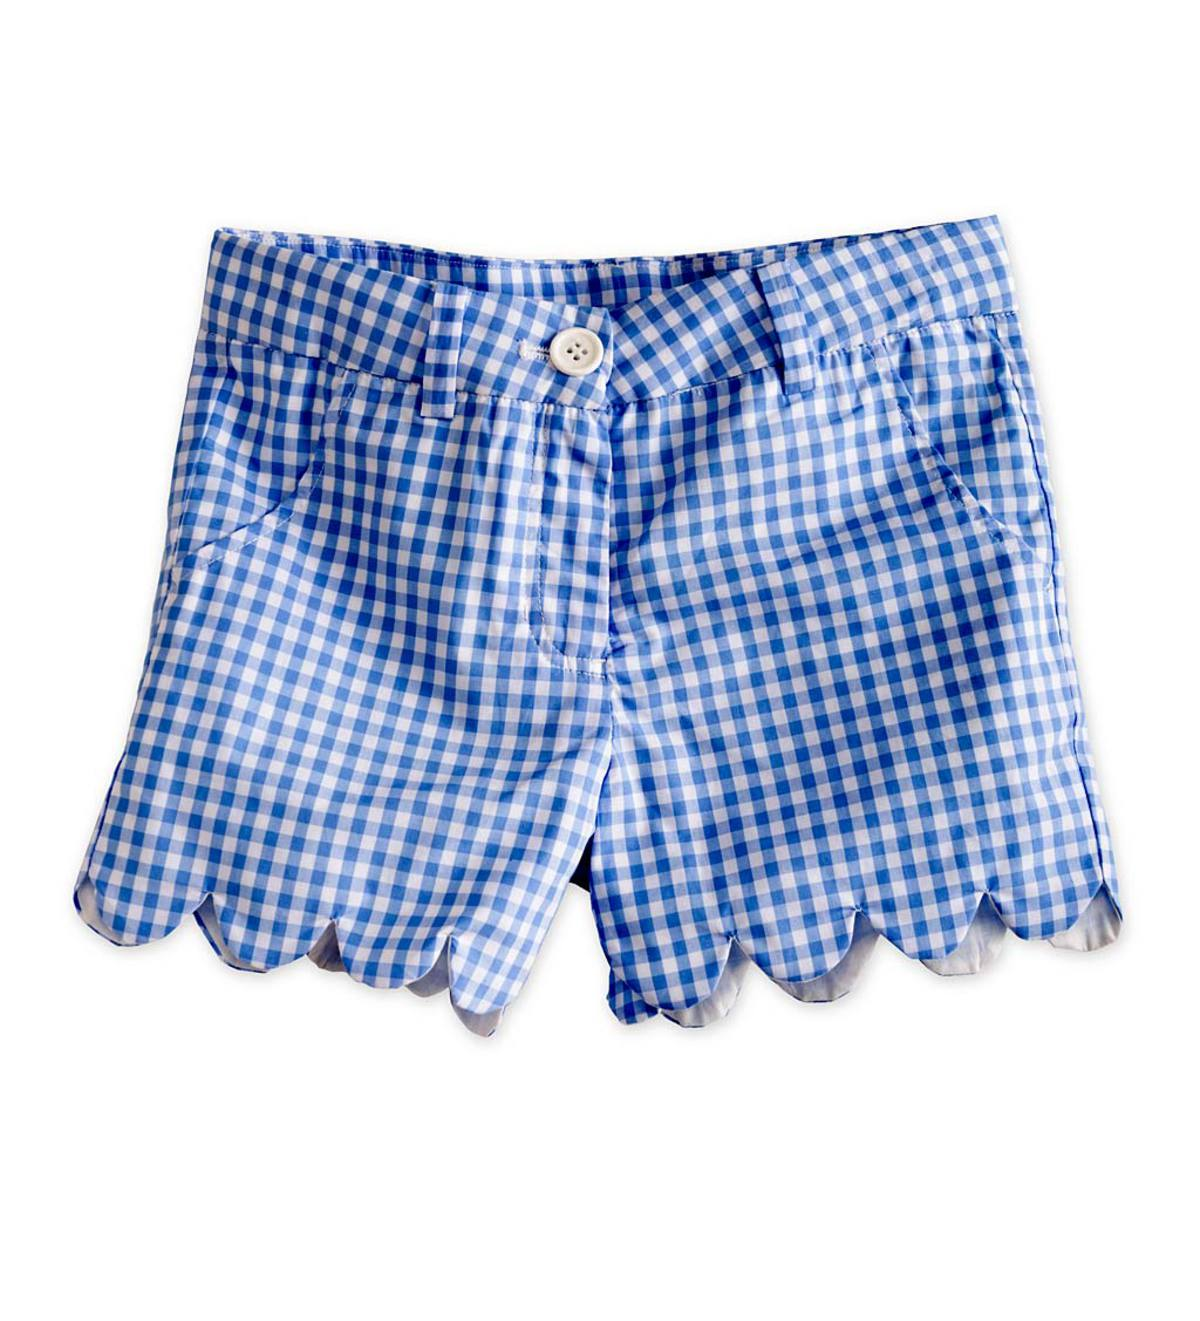 Blue Scallop Gingham Shorts - Blue - 2T